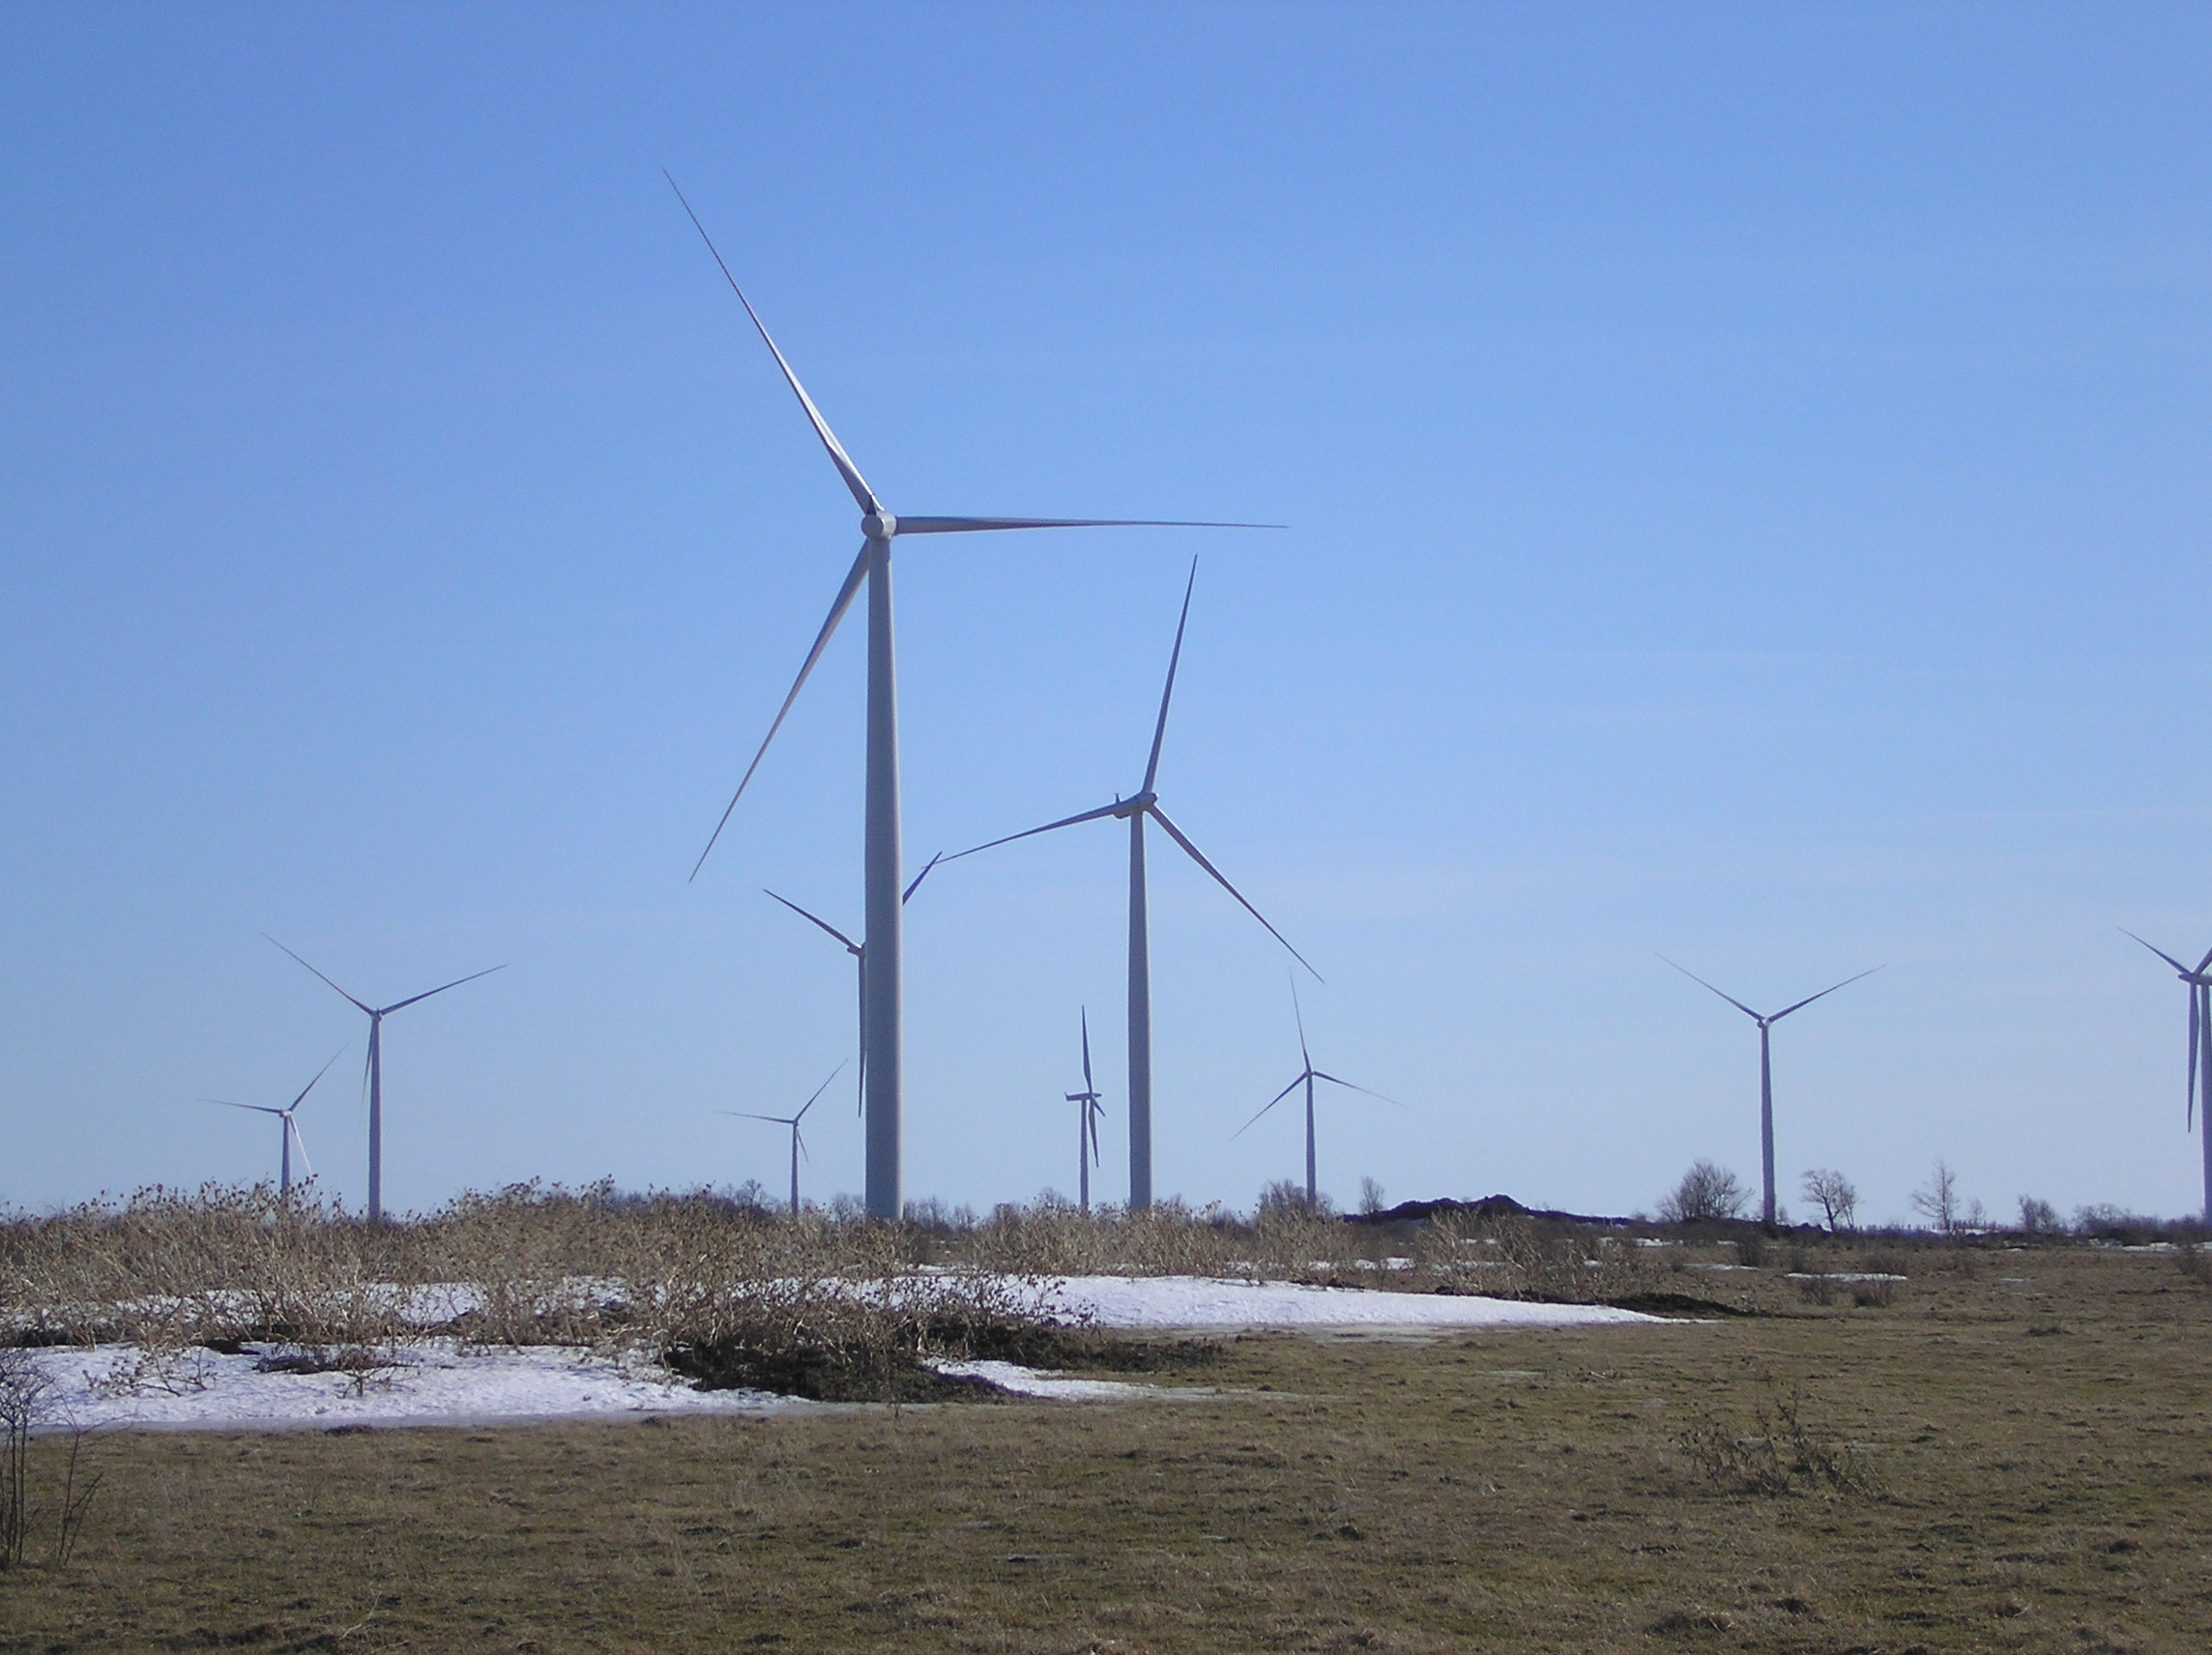 Description Wolfe island wind farm ls 09.JPG